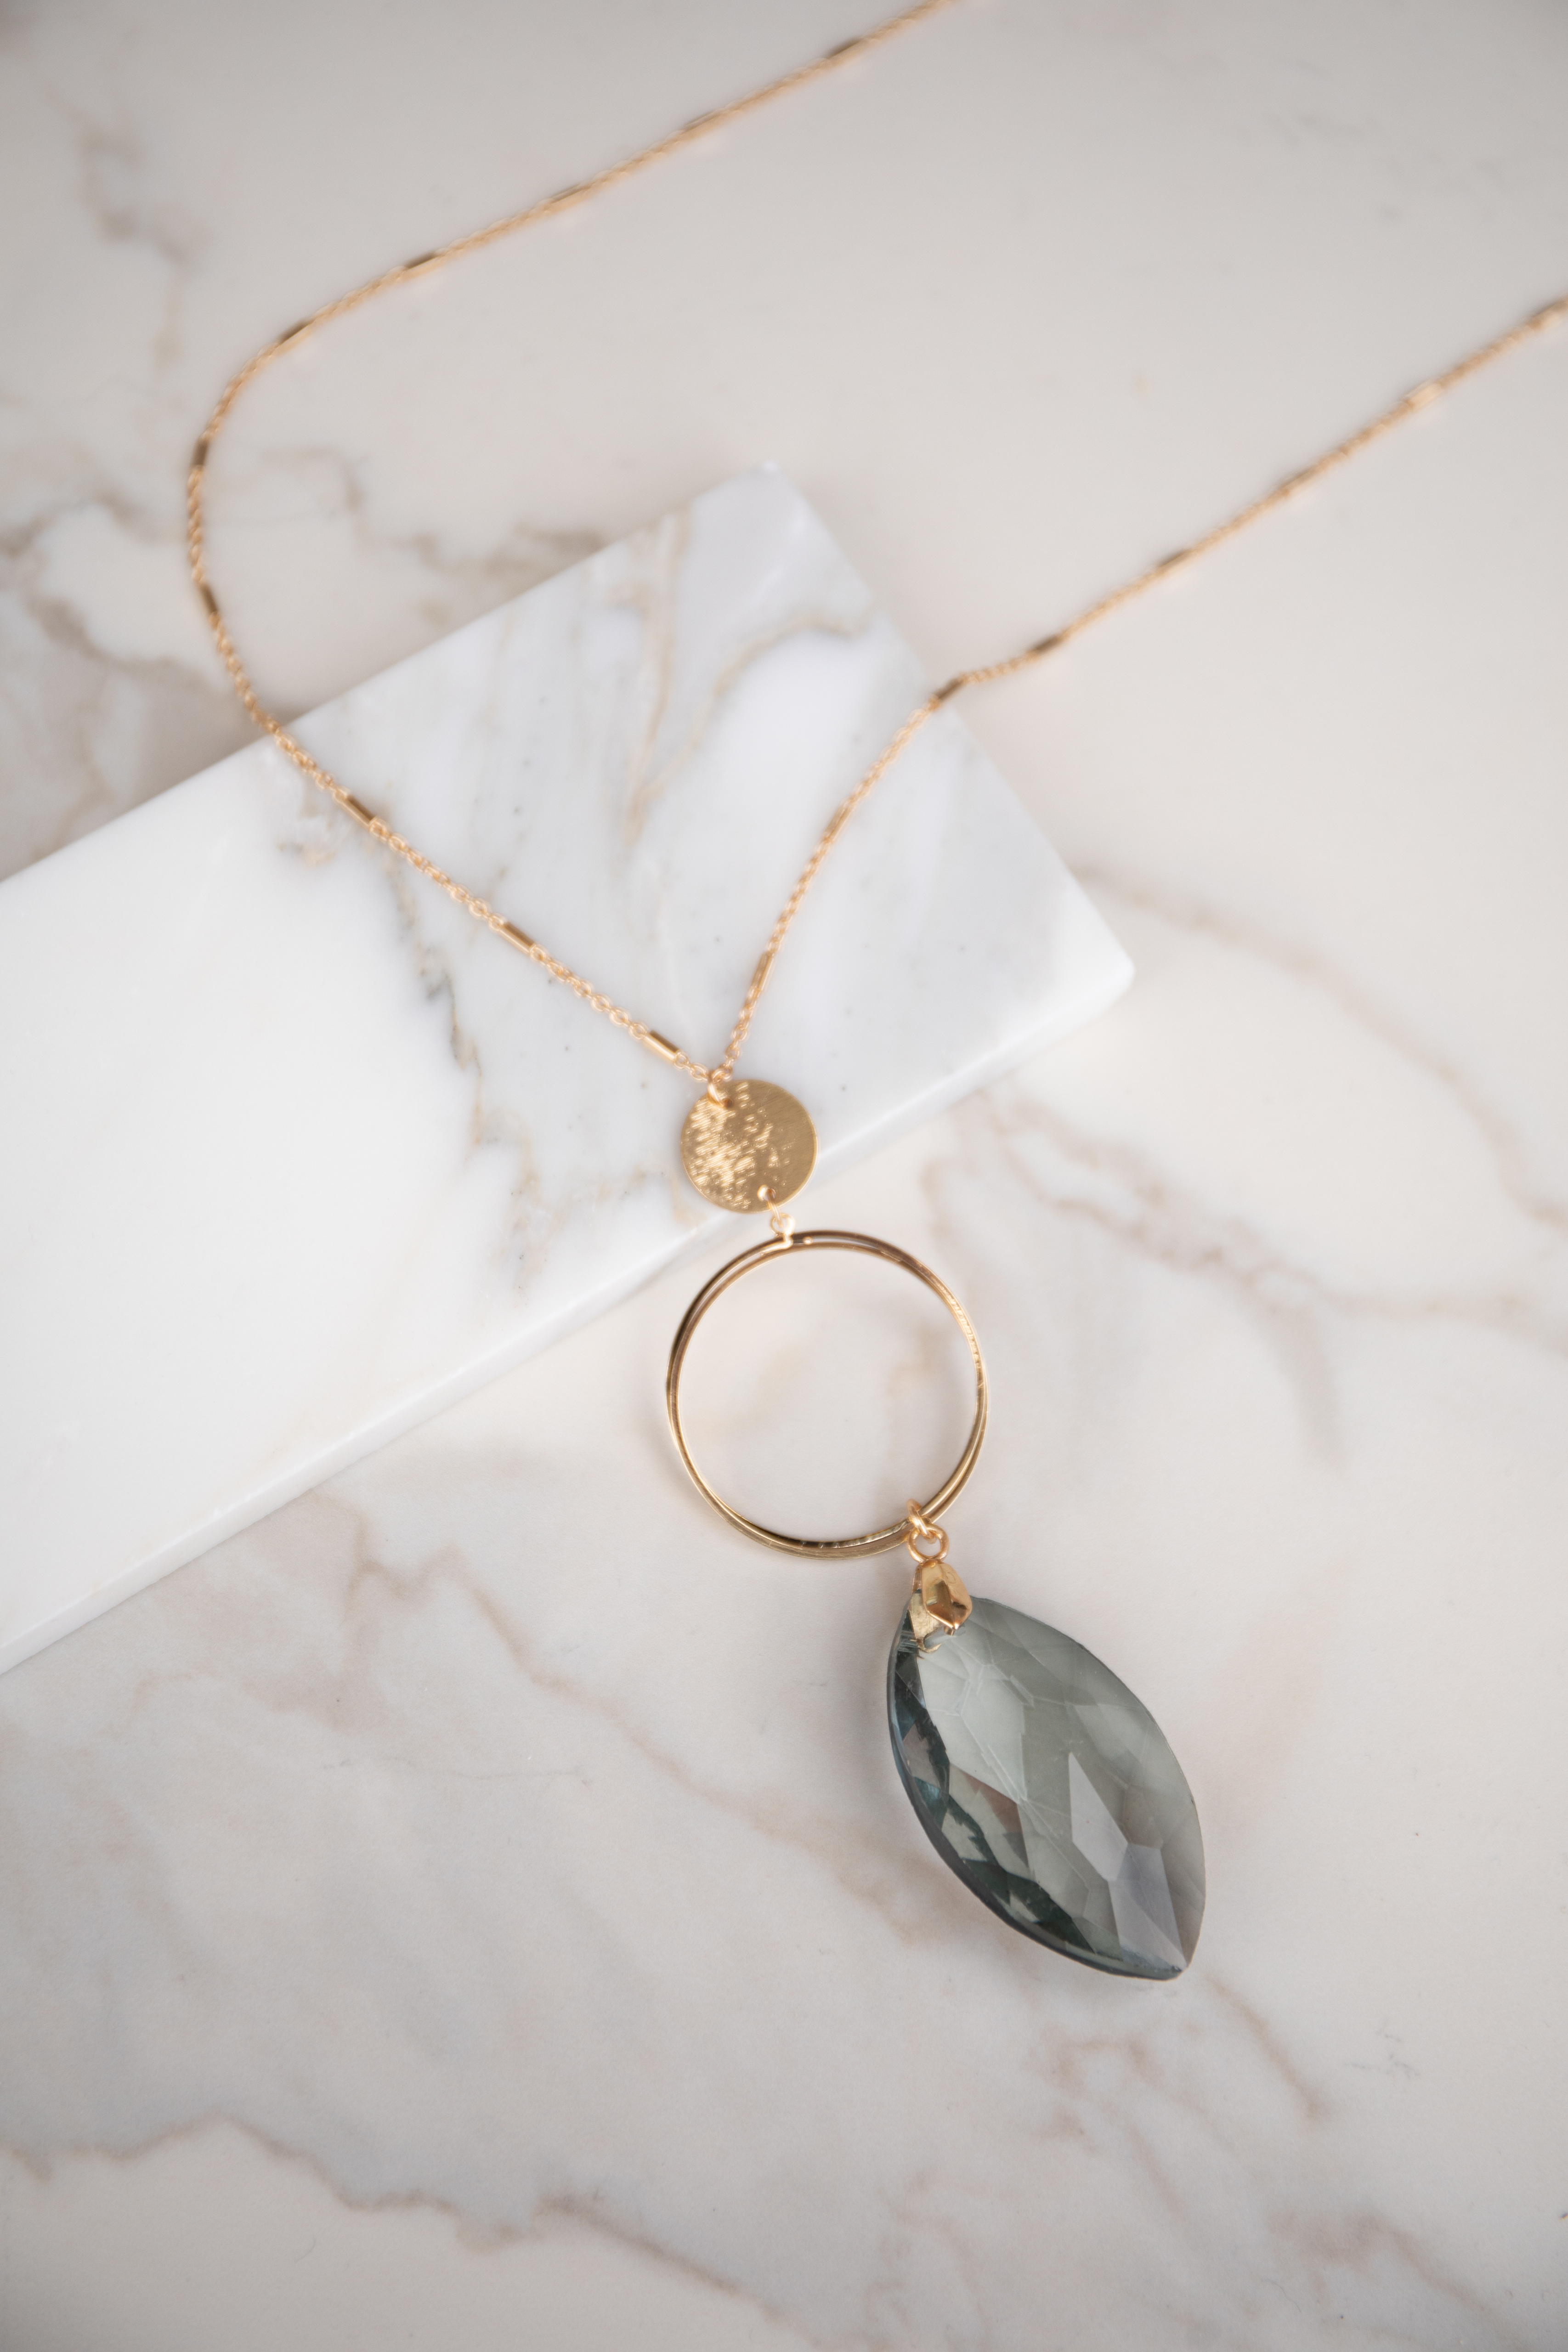 Gold Long Necklace with Large Grey Crystal Pendant